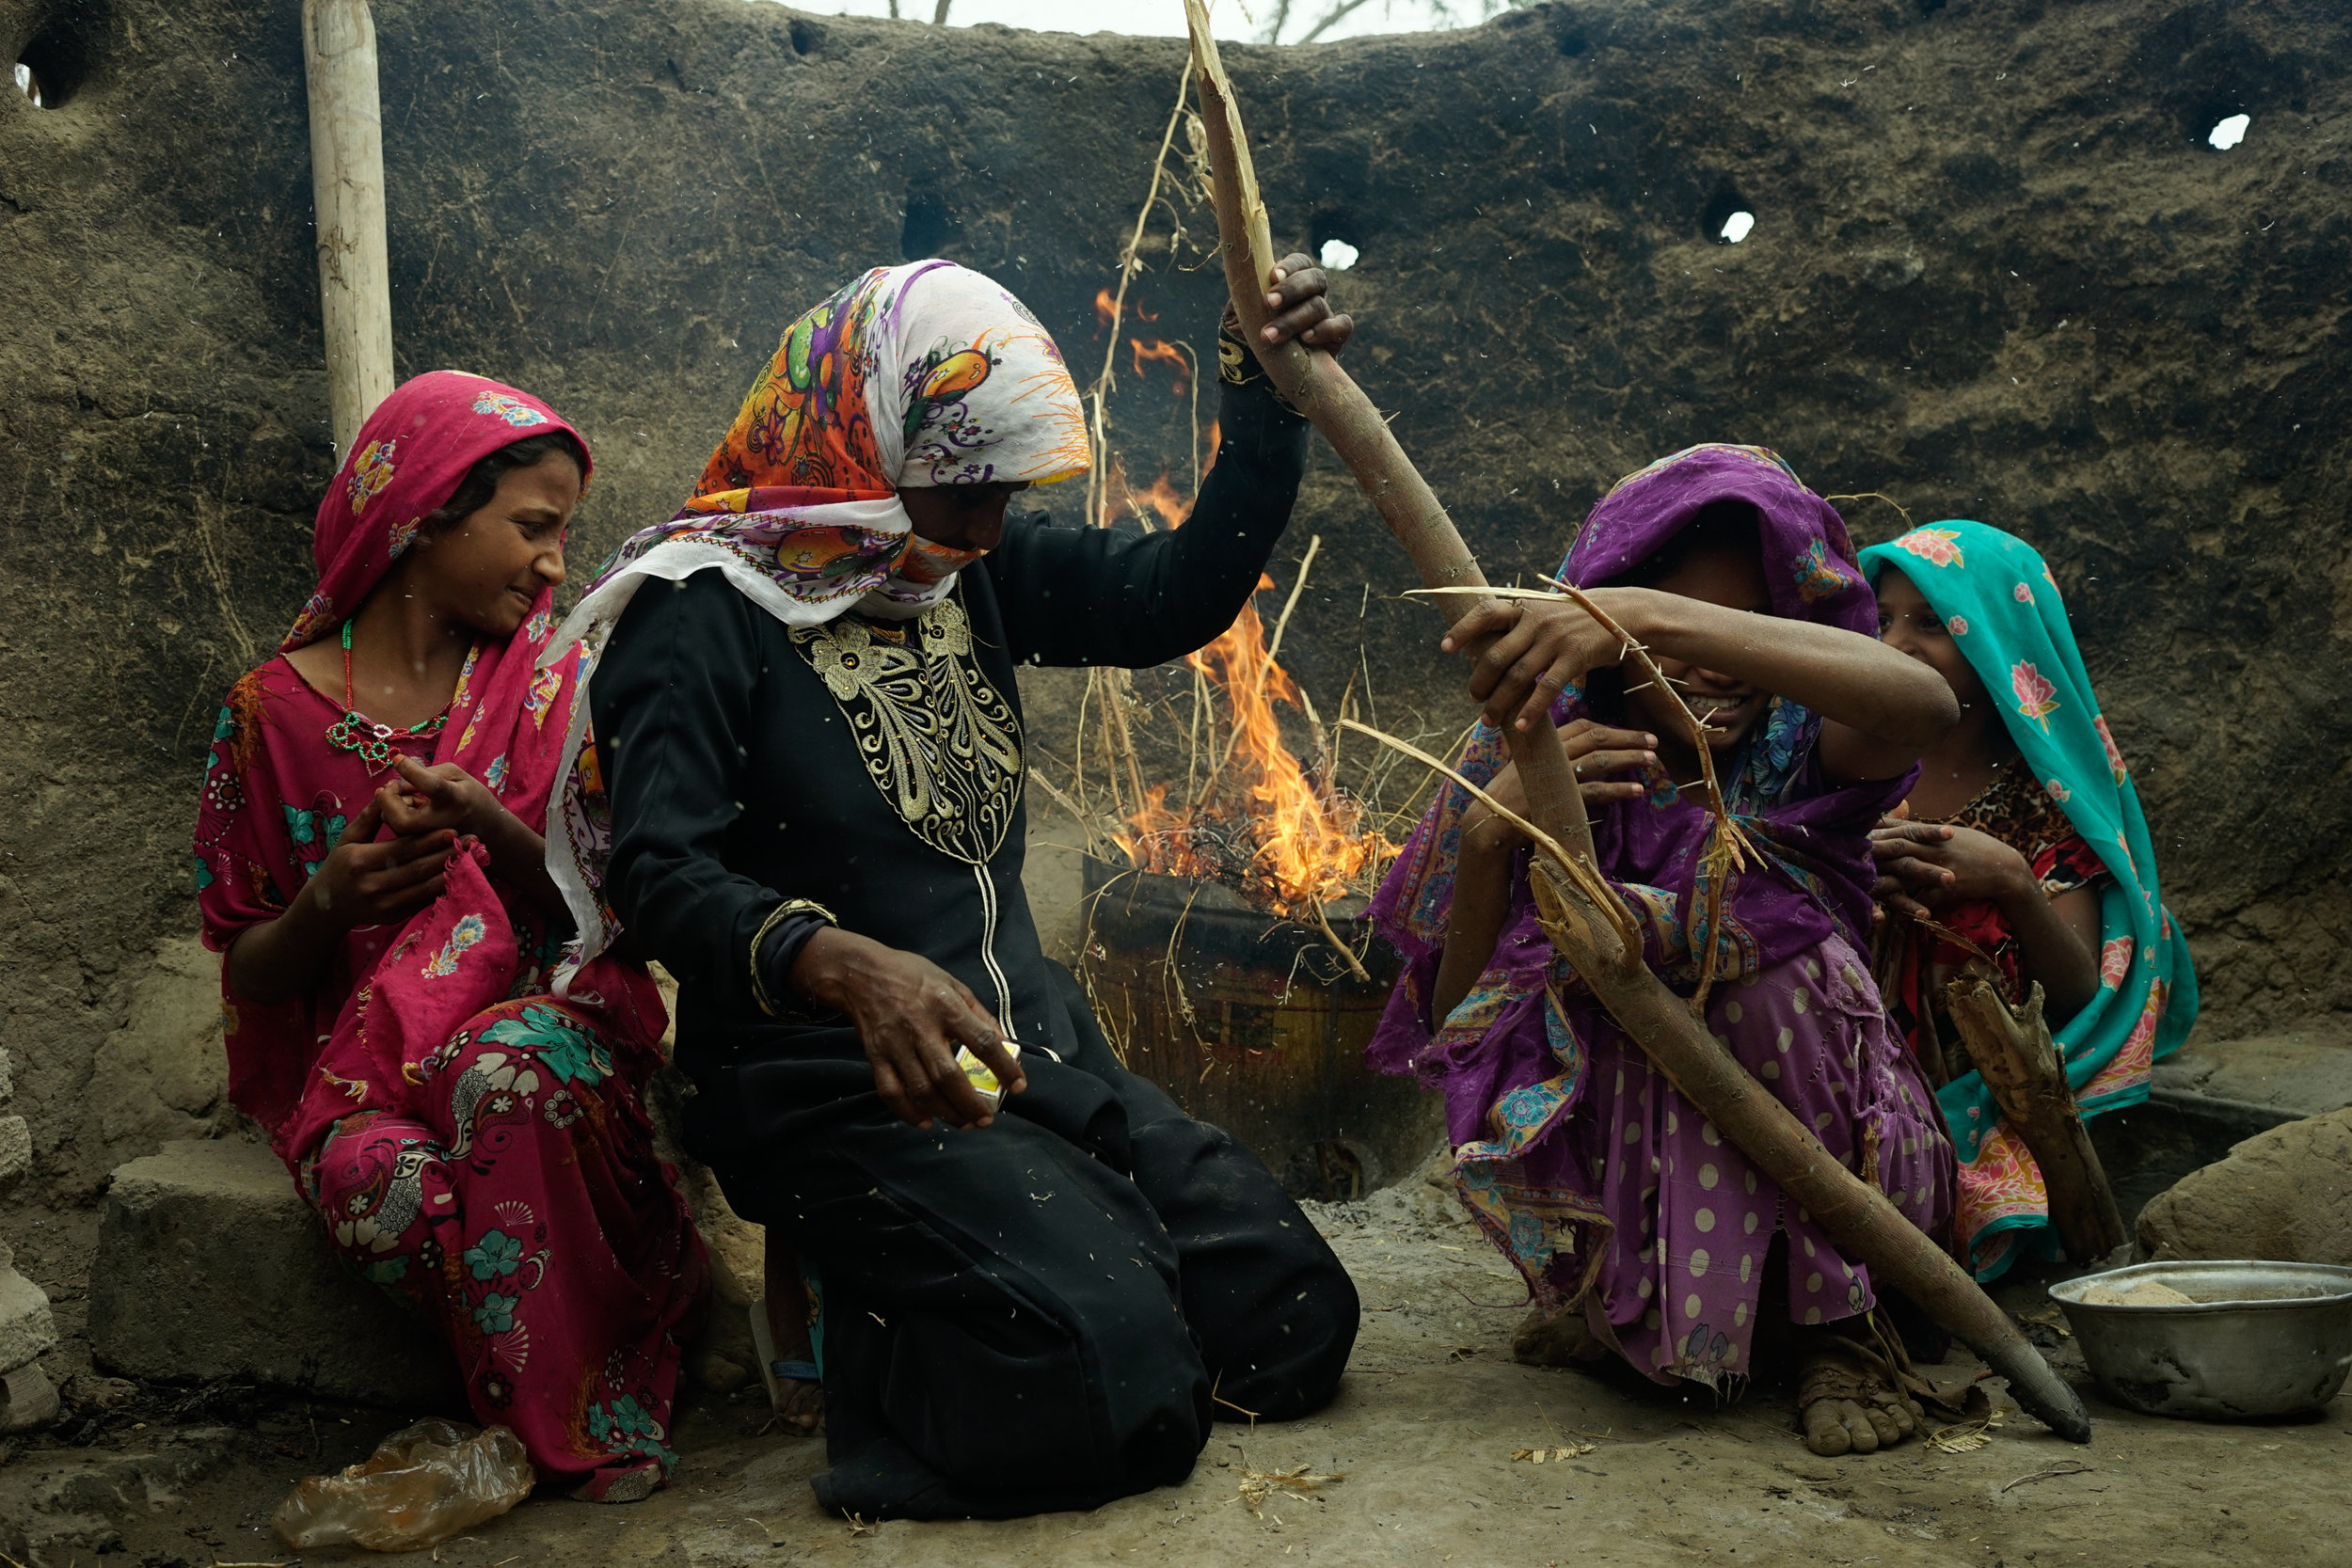 AMIRA AL-SHARIF  @amiraalsharif6681   Young girls prepare a fire so they can bake bread in Marawa'ah, Yemen on January 31, 2018.